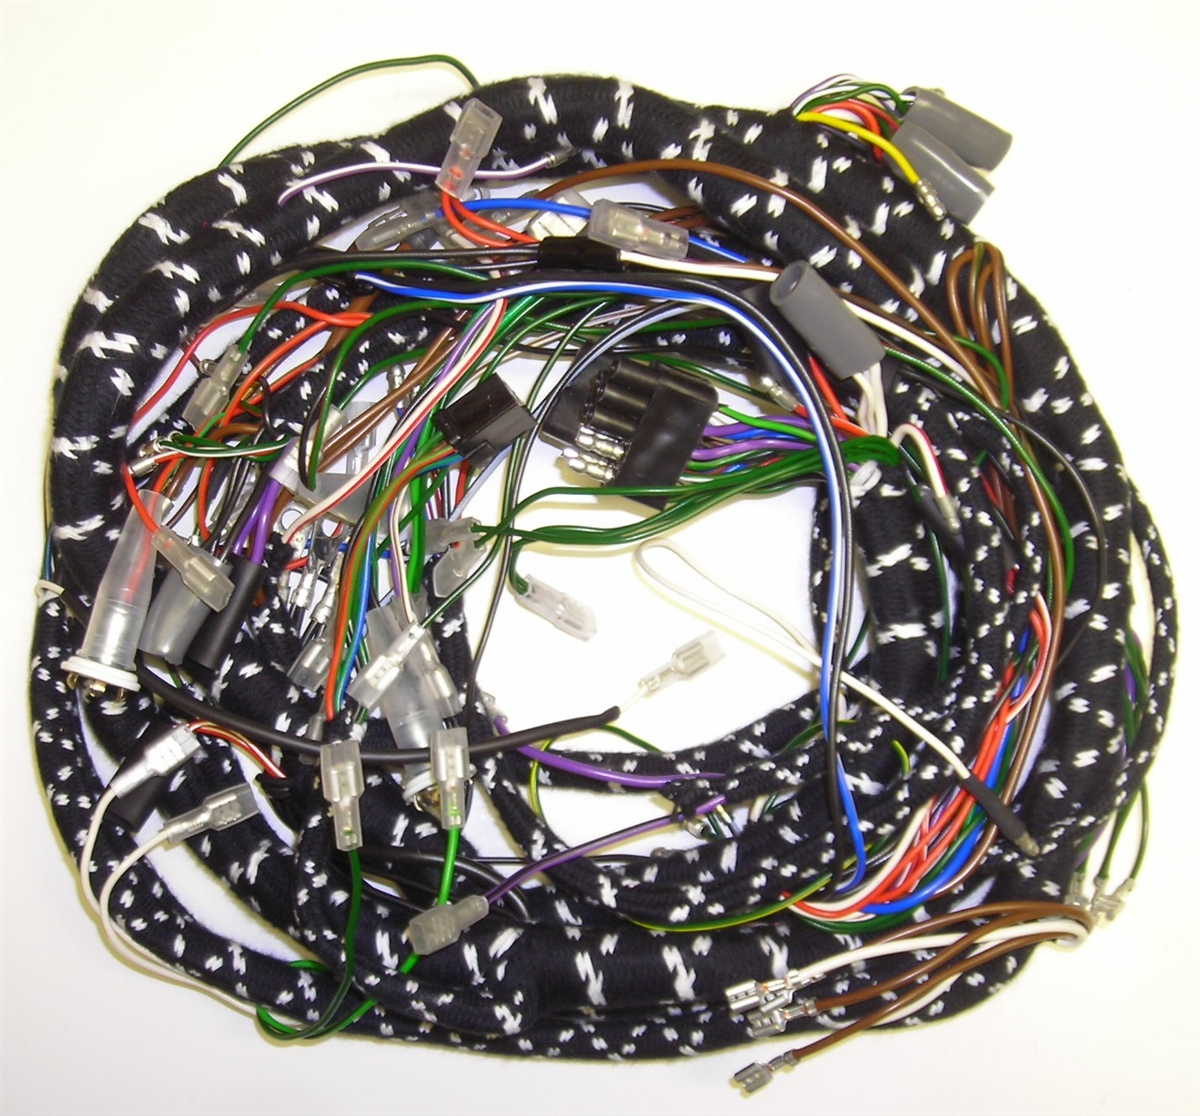 MGB 1967-68 Main & Dash Wiring Harness (525) on